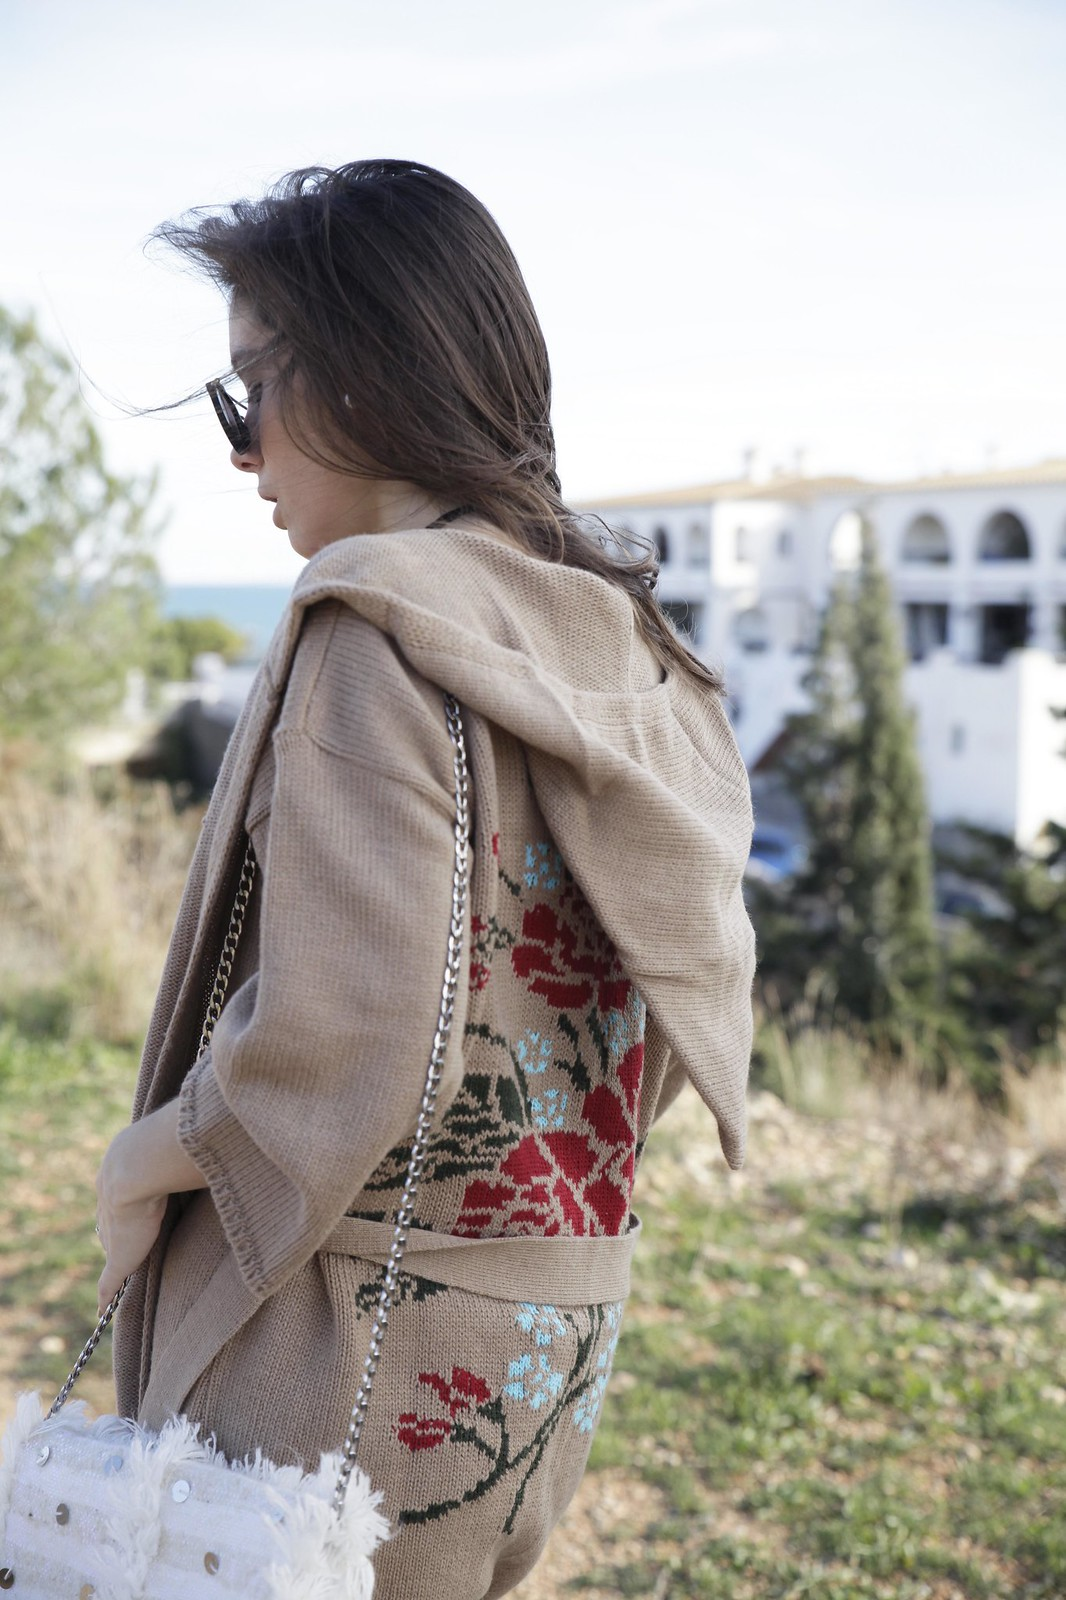 015_trend_alert_flowers_outfit_spring_blogger_influencer_barcelona_theguestgirl_laura_santolaria